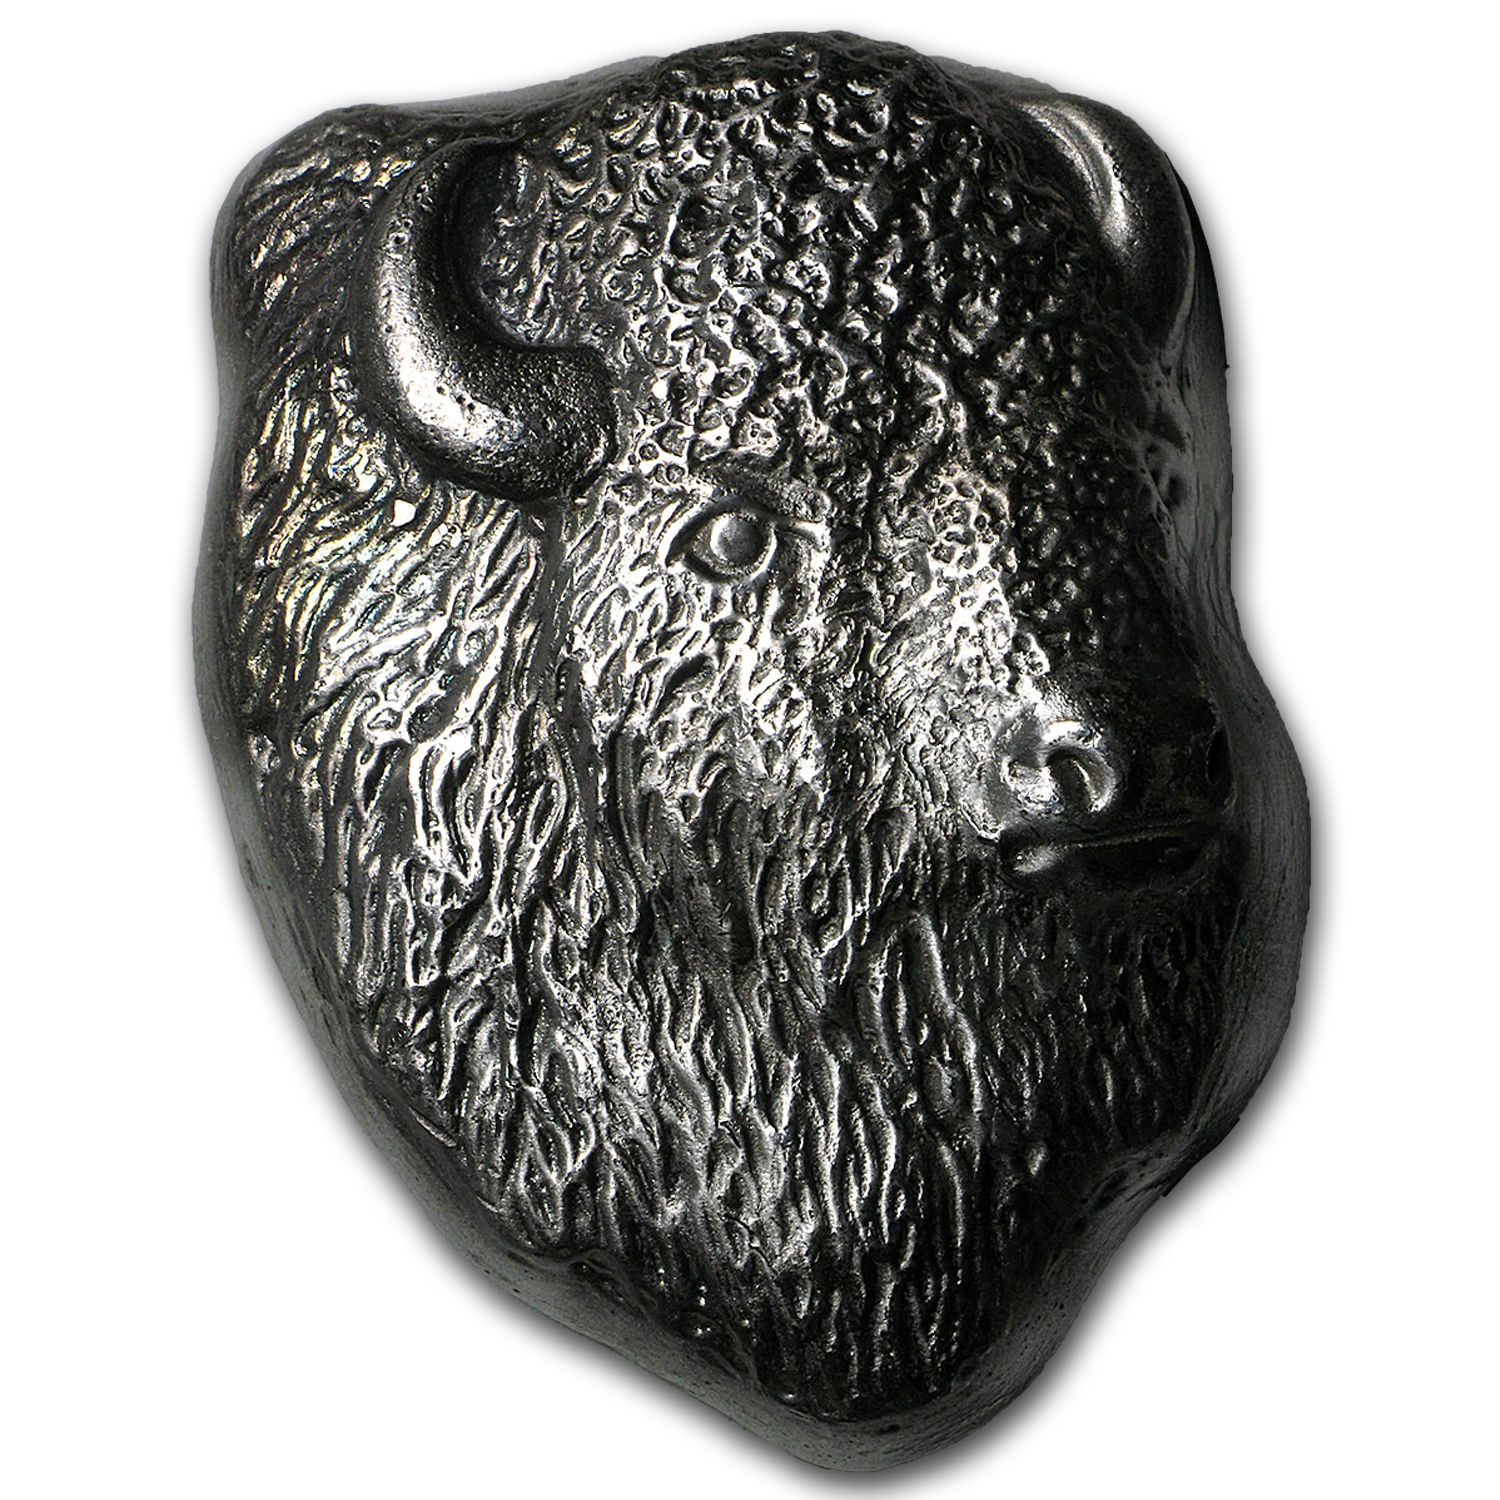 10 oz Silver Bar - Bison Head